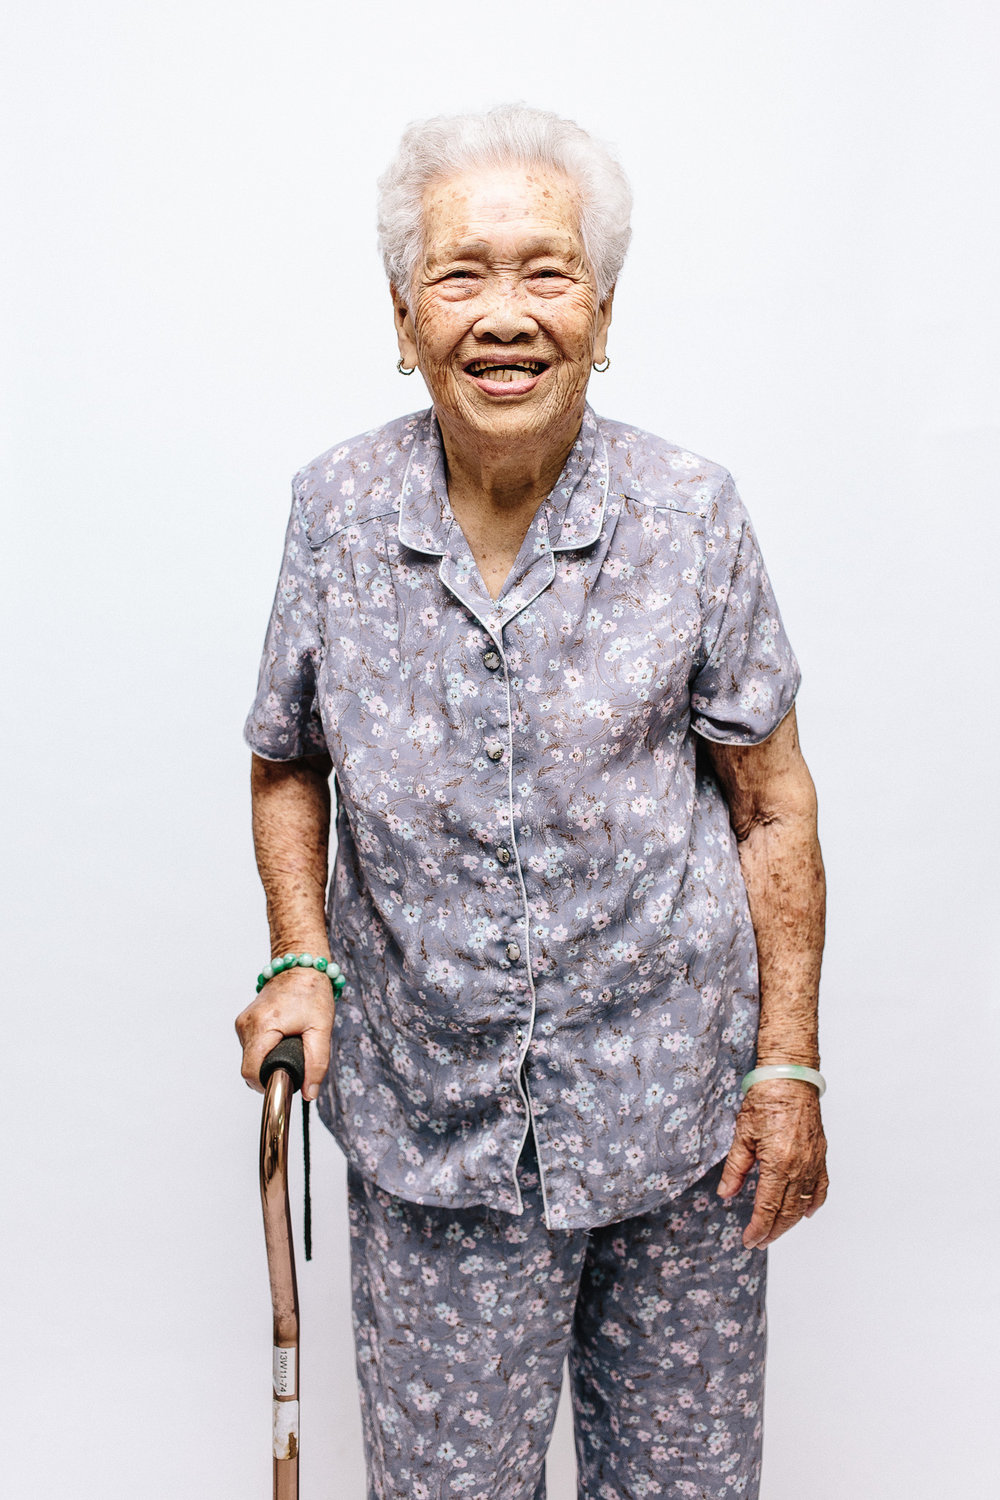 zainal-zainal-studio-centenarians-care-duke-nus-singapore-photographer-04.jpg